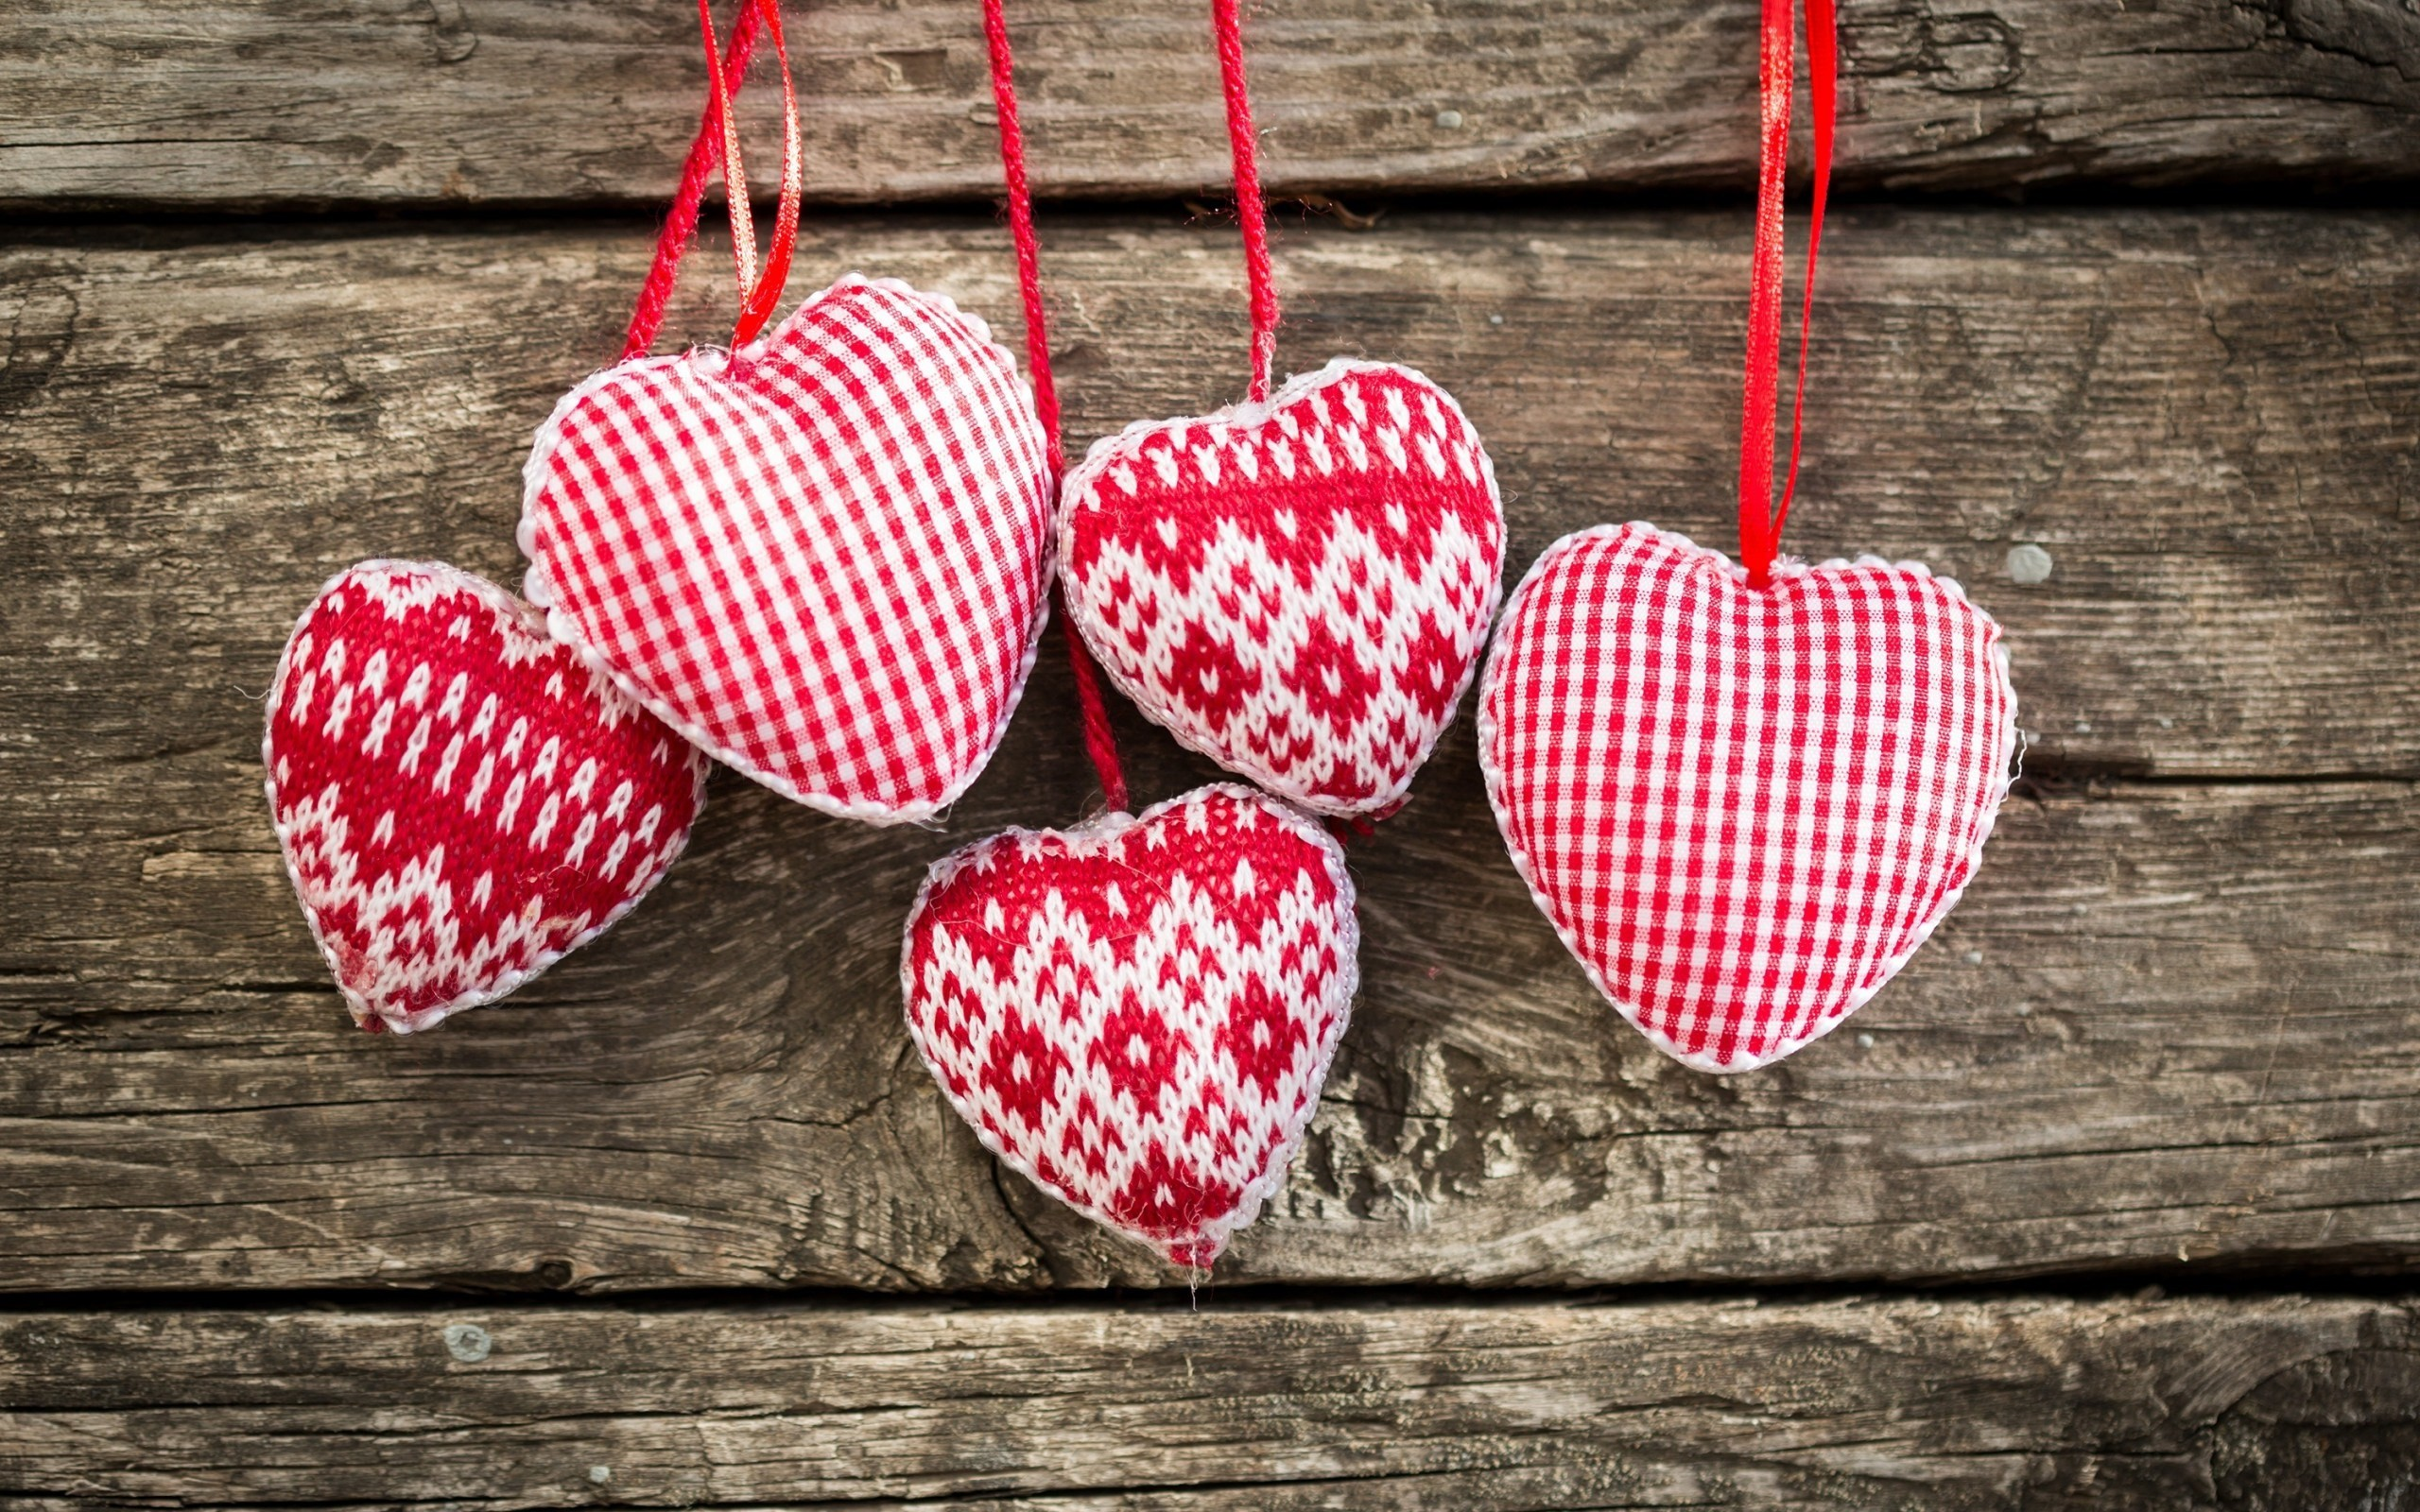 Res: 2560x1600, Beautiful Christmas heart ornaments